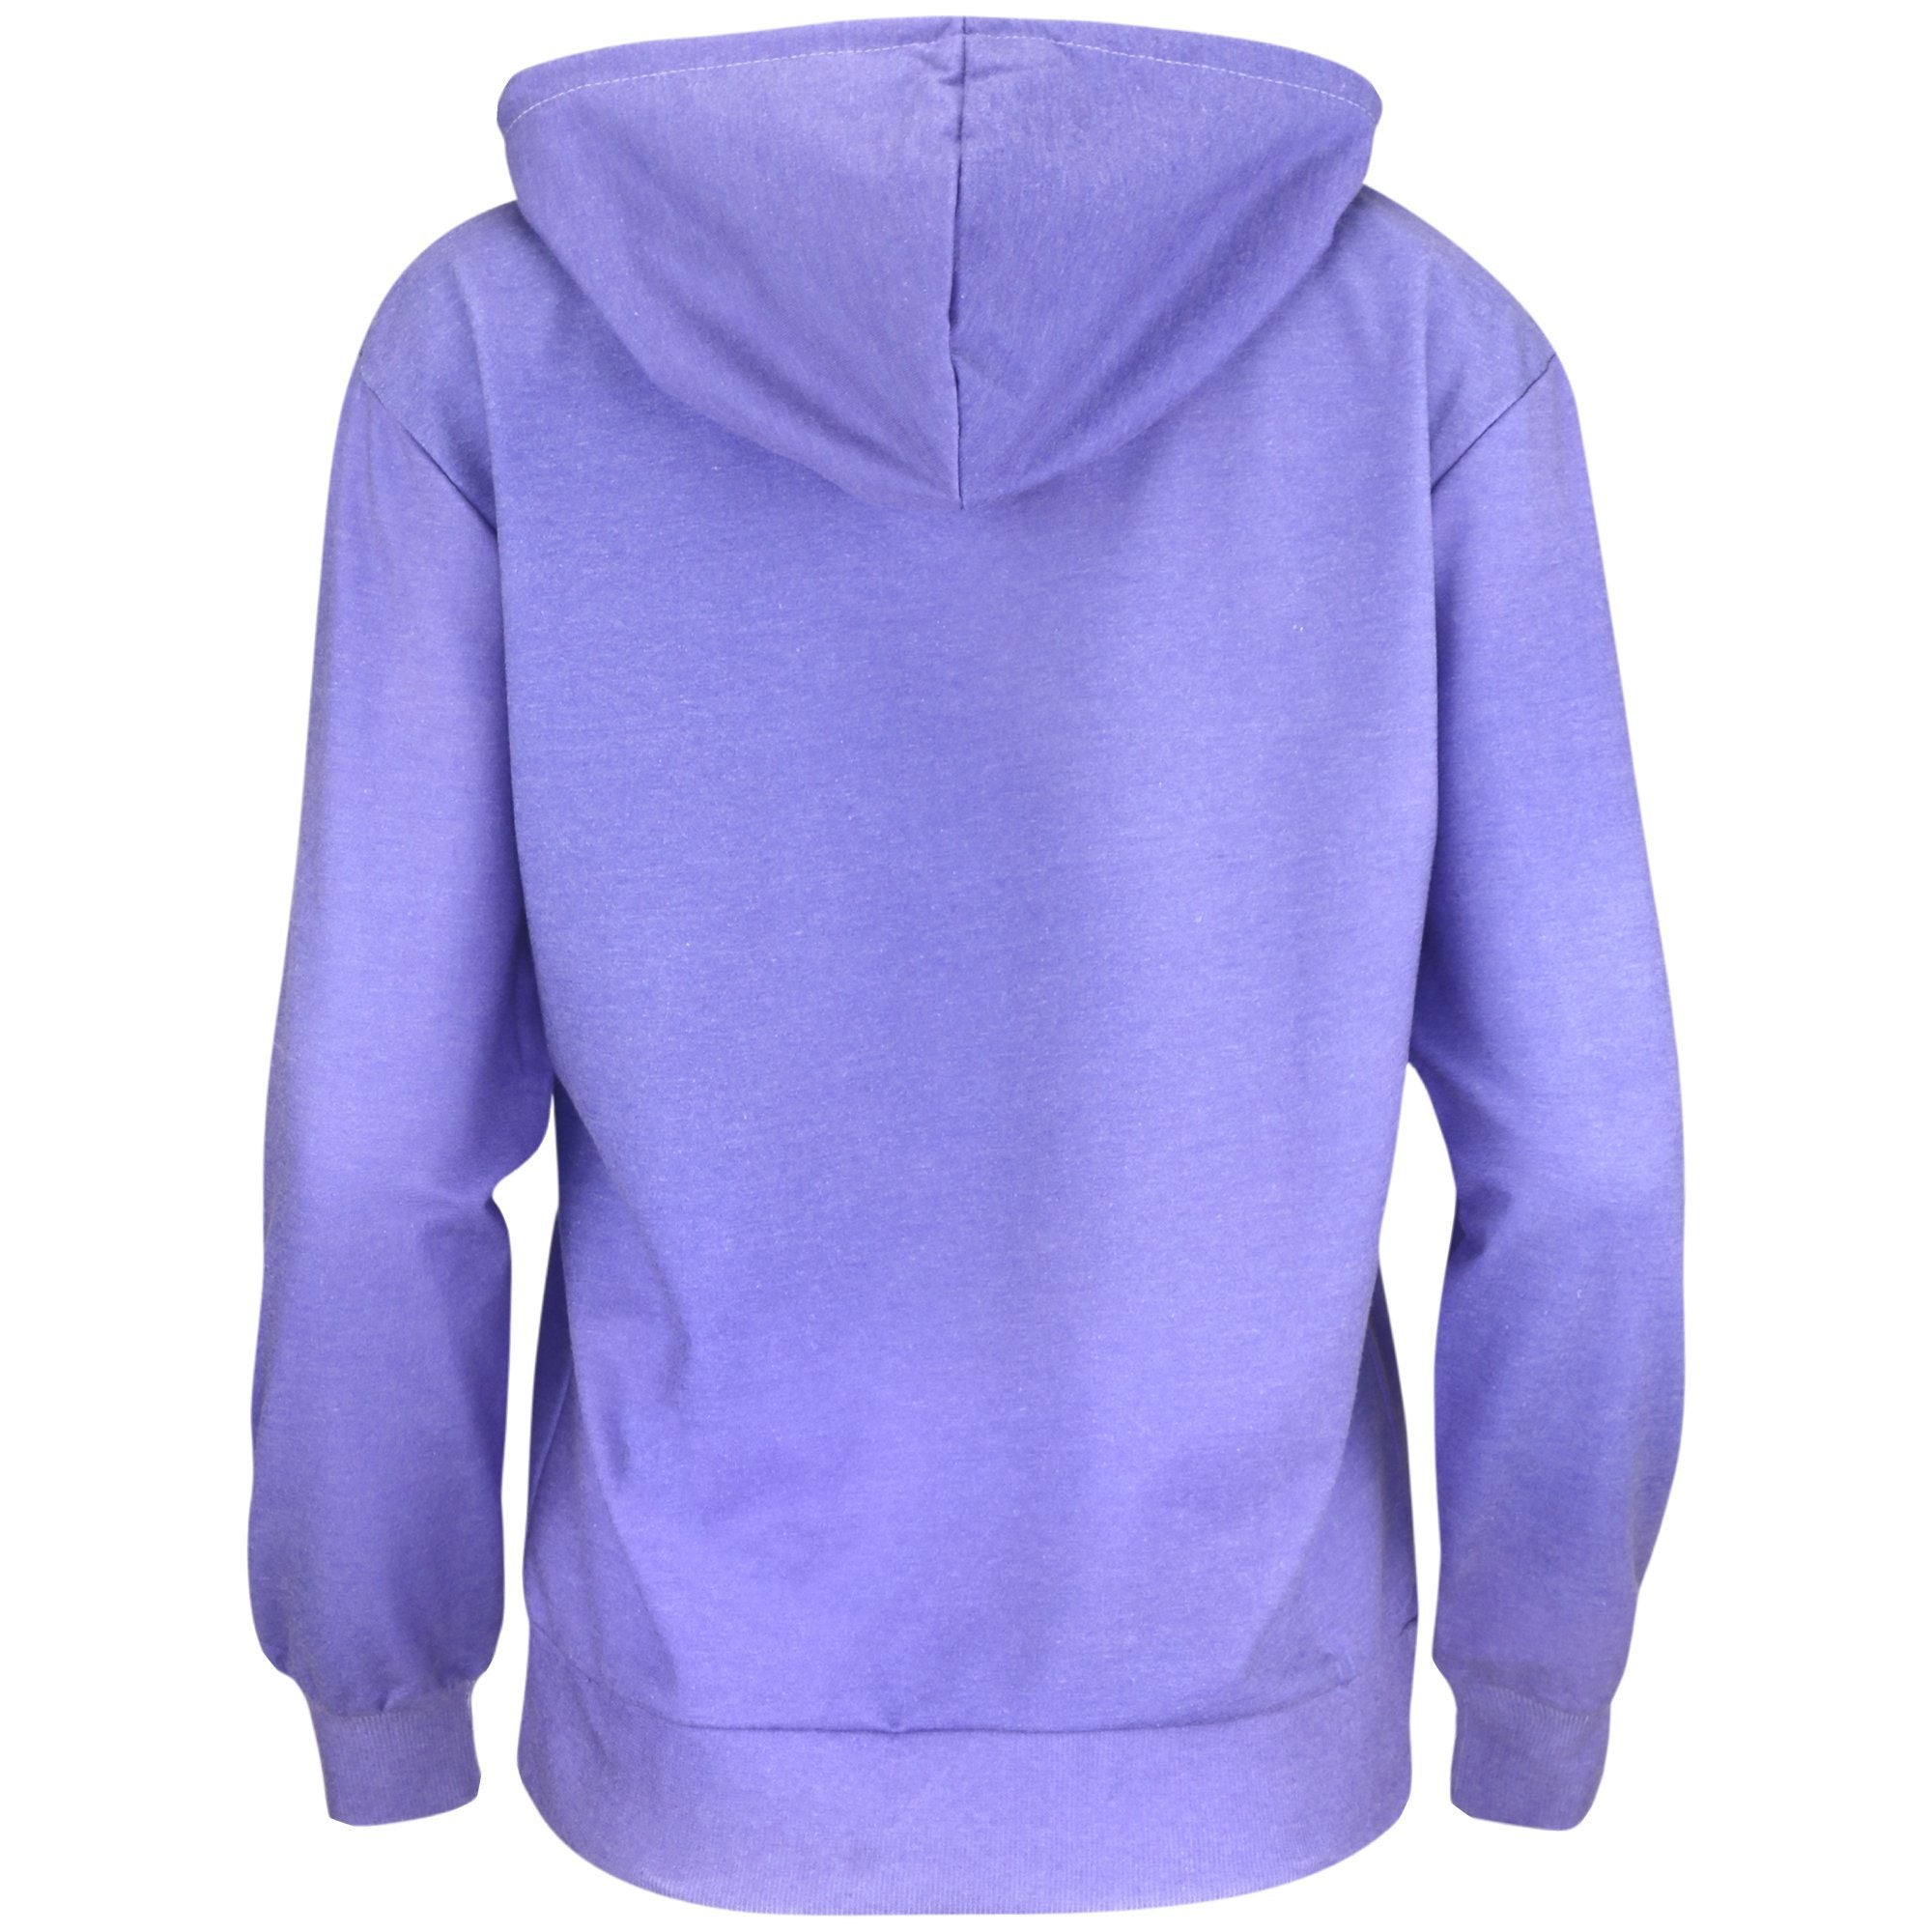 Dragonfly Mens Novelty Lightweight Hoodies Pullover Hooded Top Warm Jacket